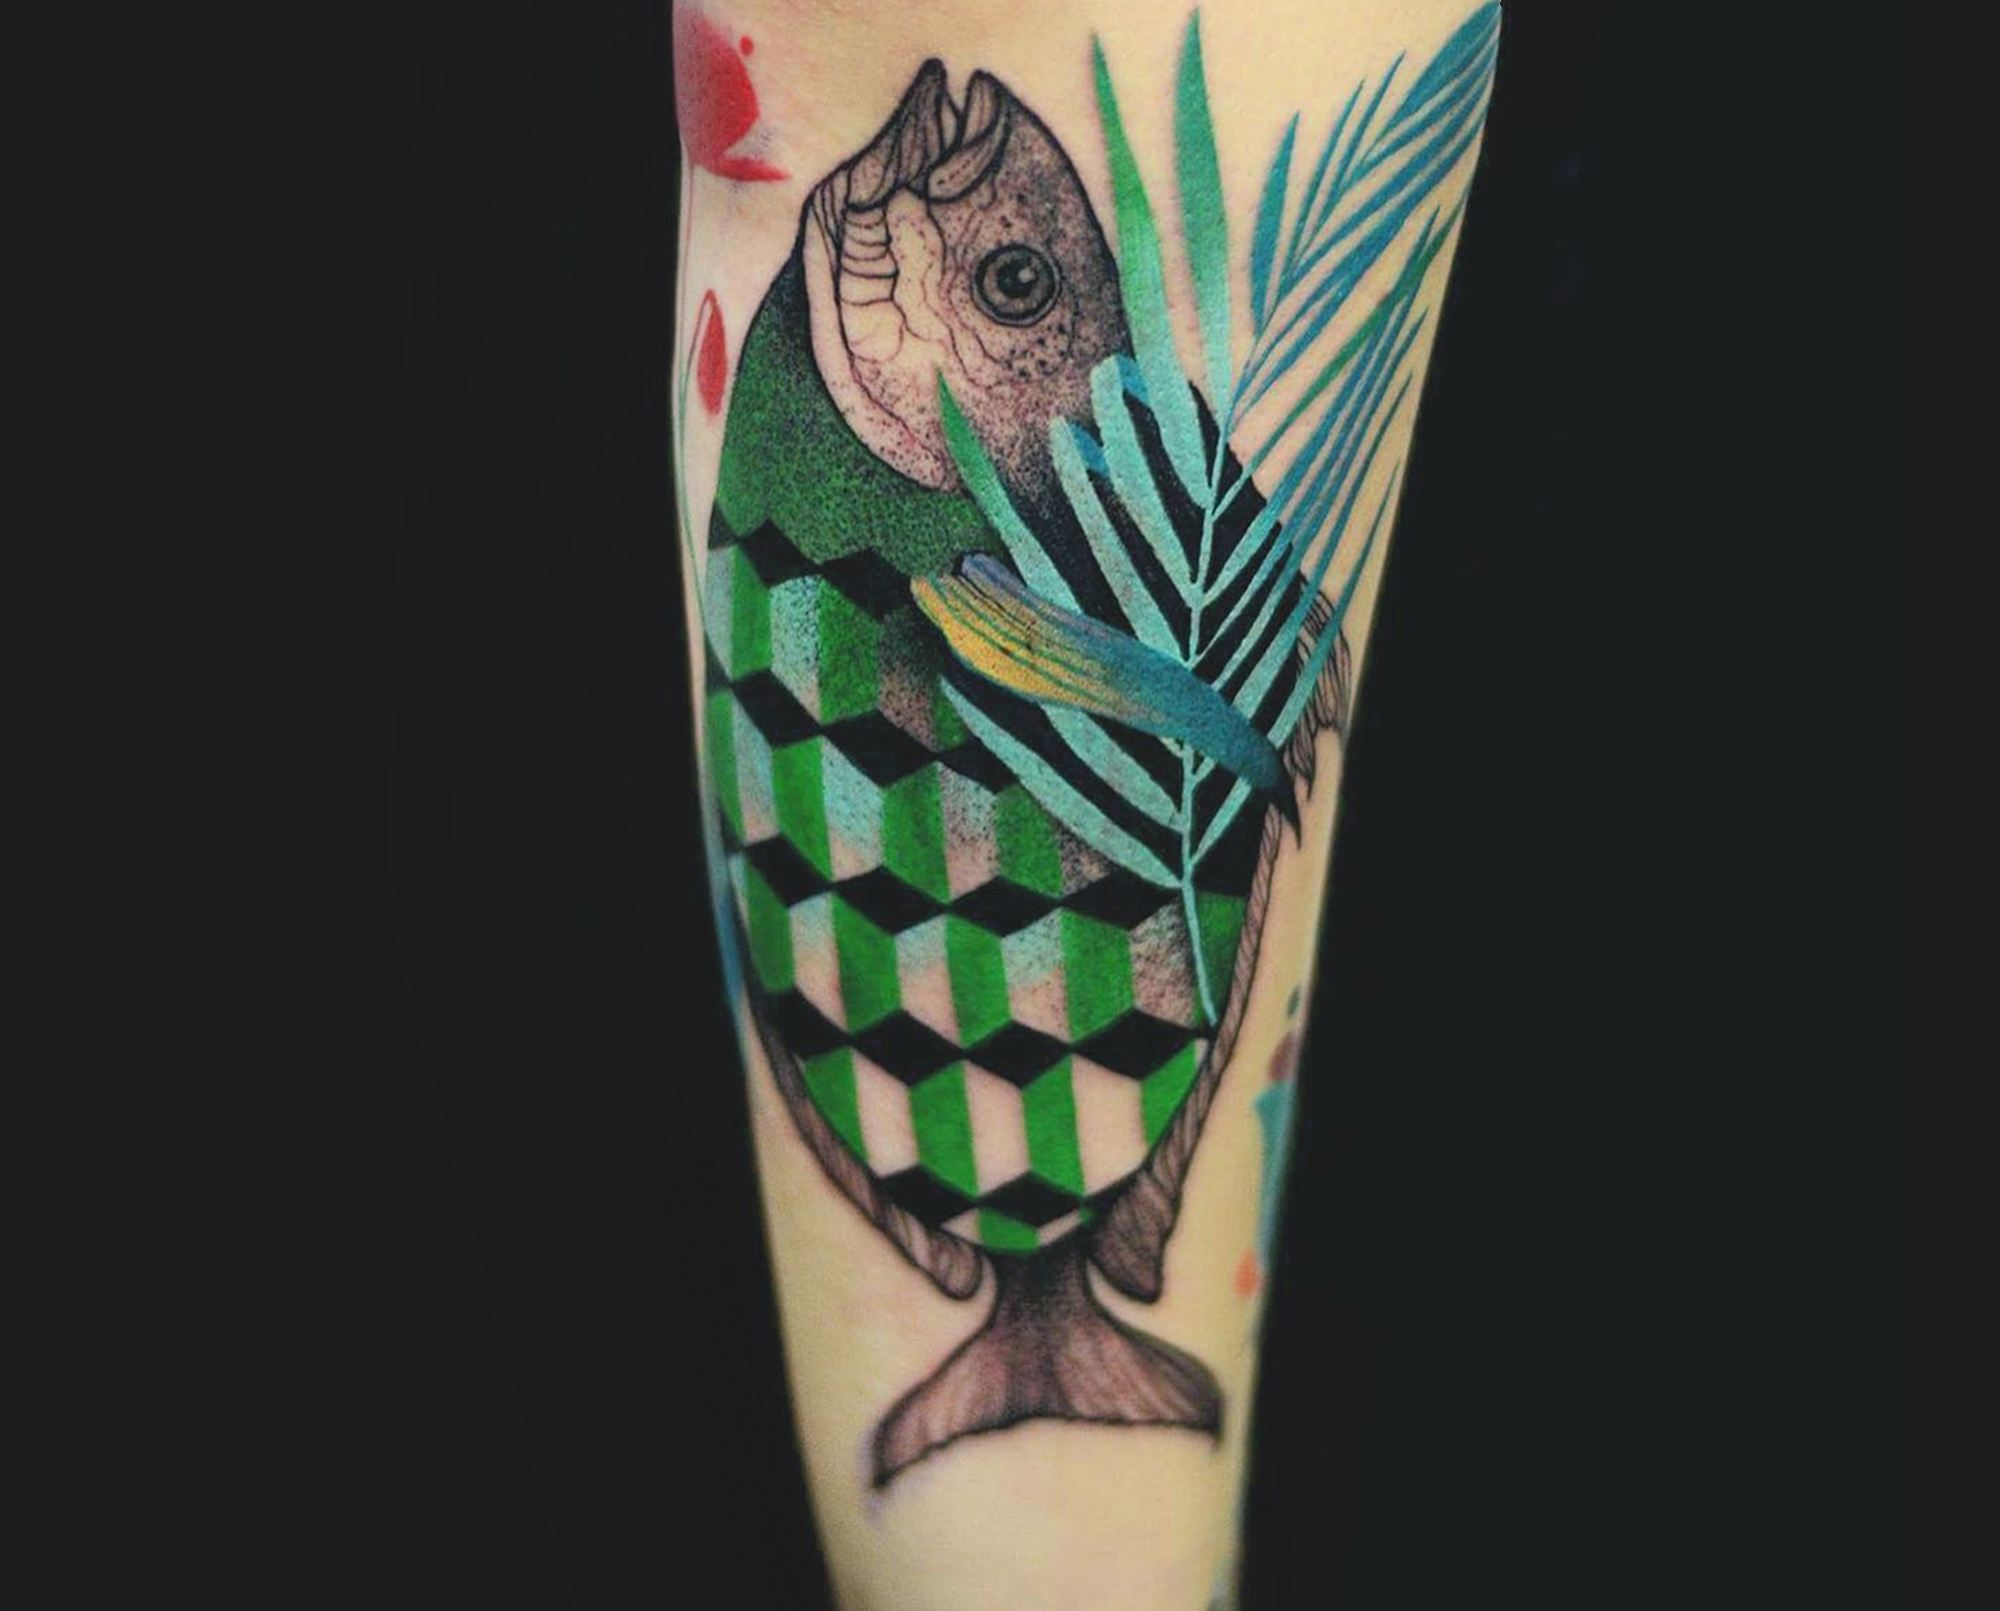 fish, escher style, tattoo